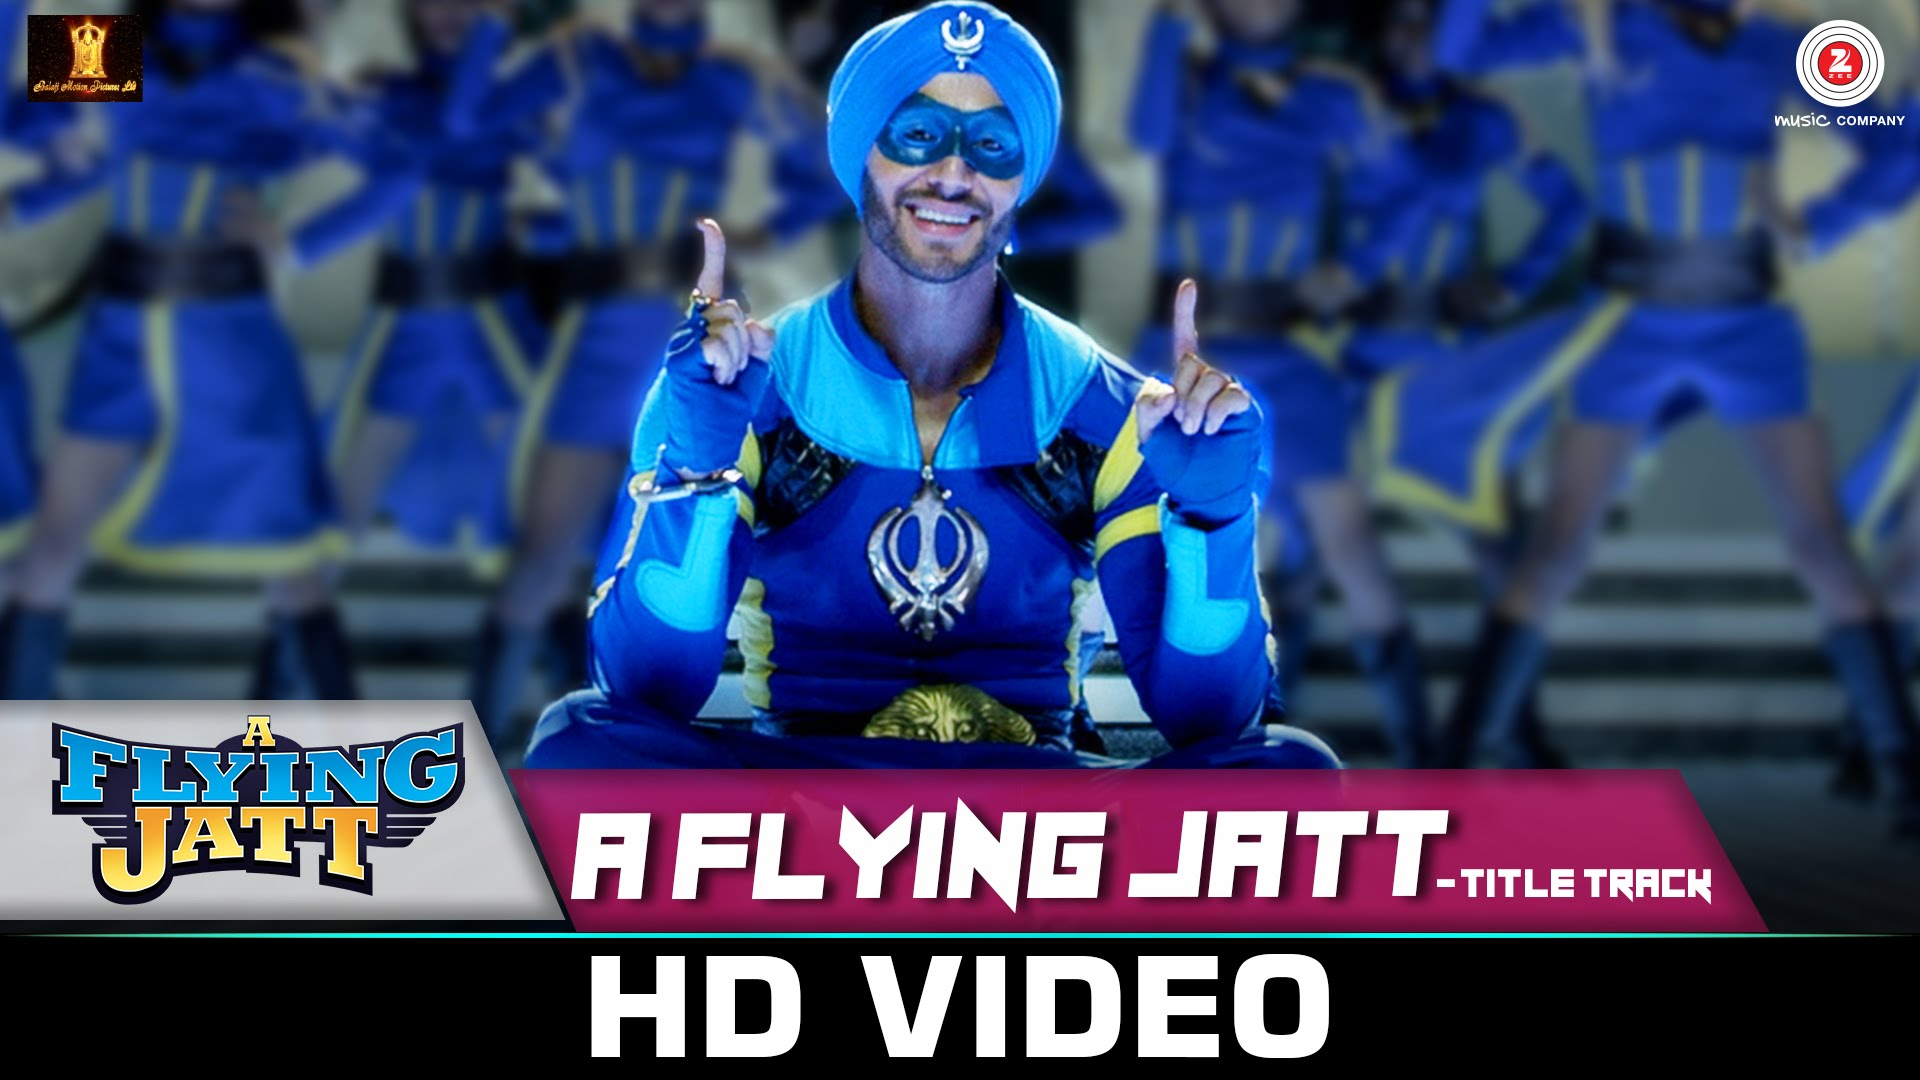 New Song Alert | A Flying Jatt Title Track is here, don't miss it!